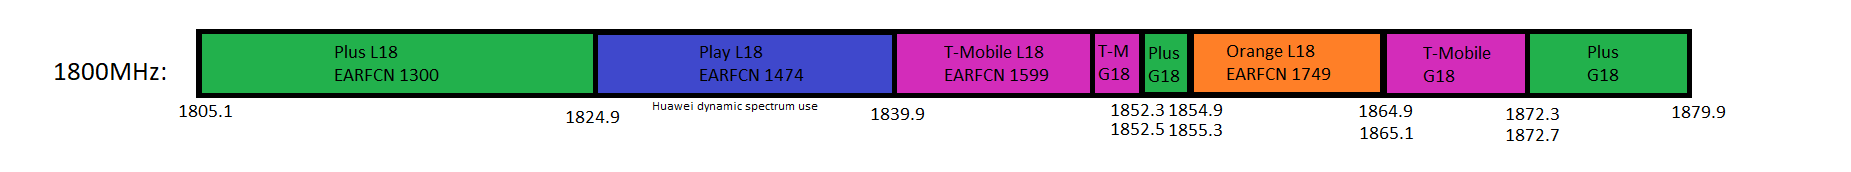 1800MHz (band 3) Poland frequencies for 2G GSM and 4G LTE.